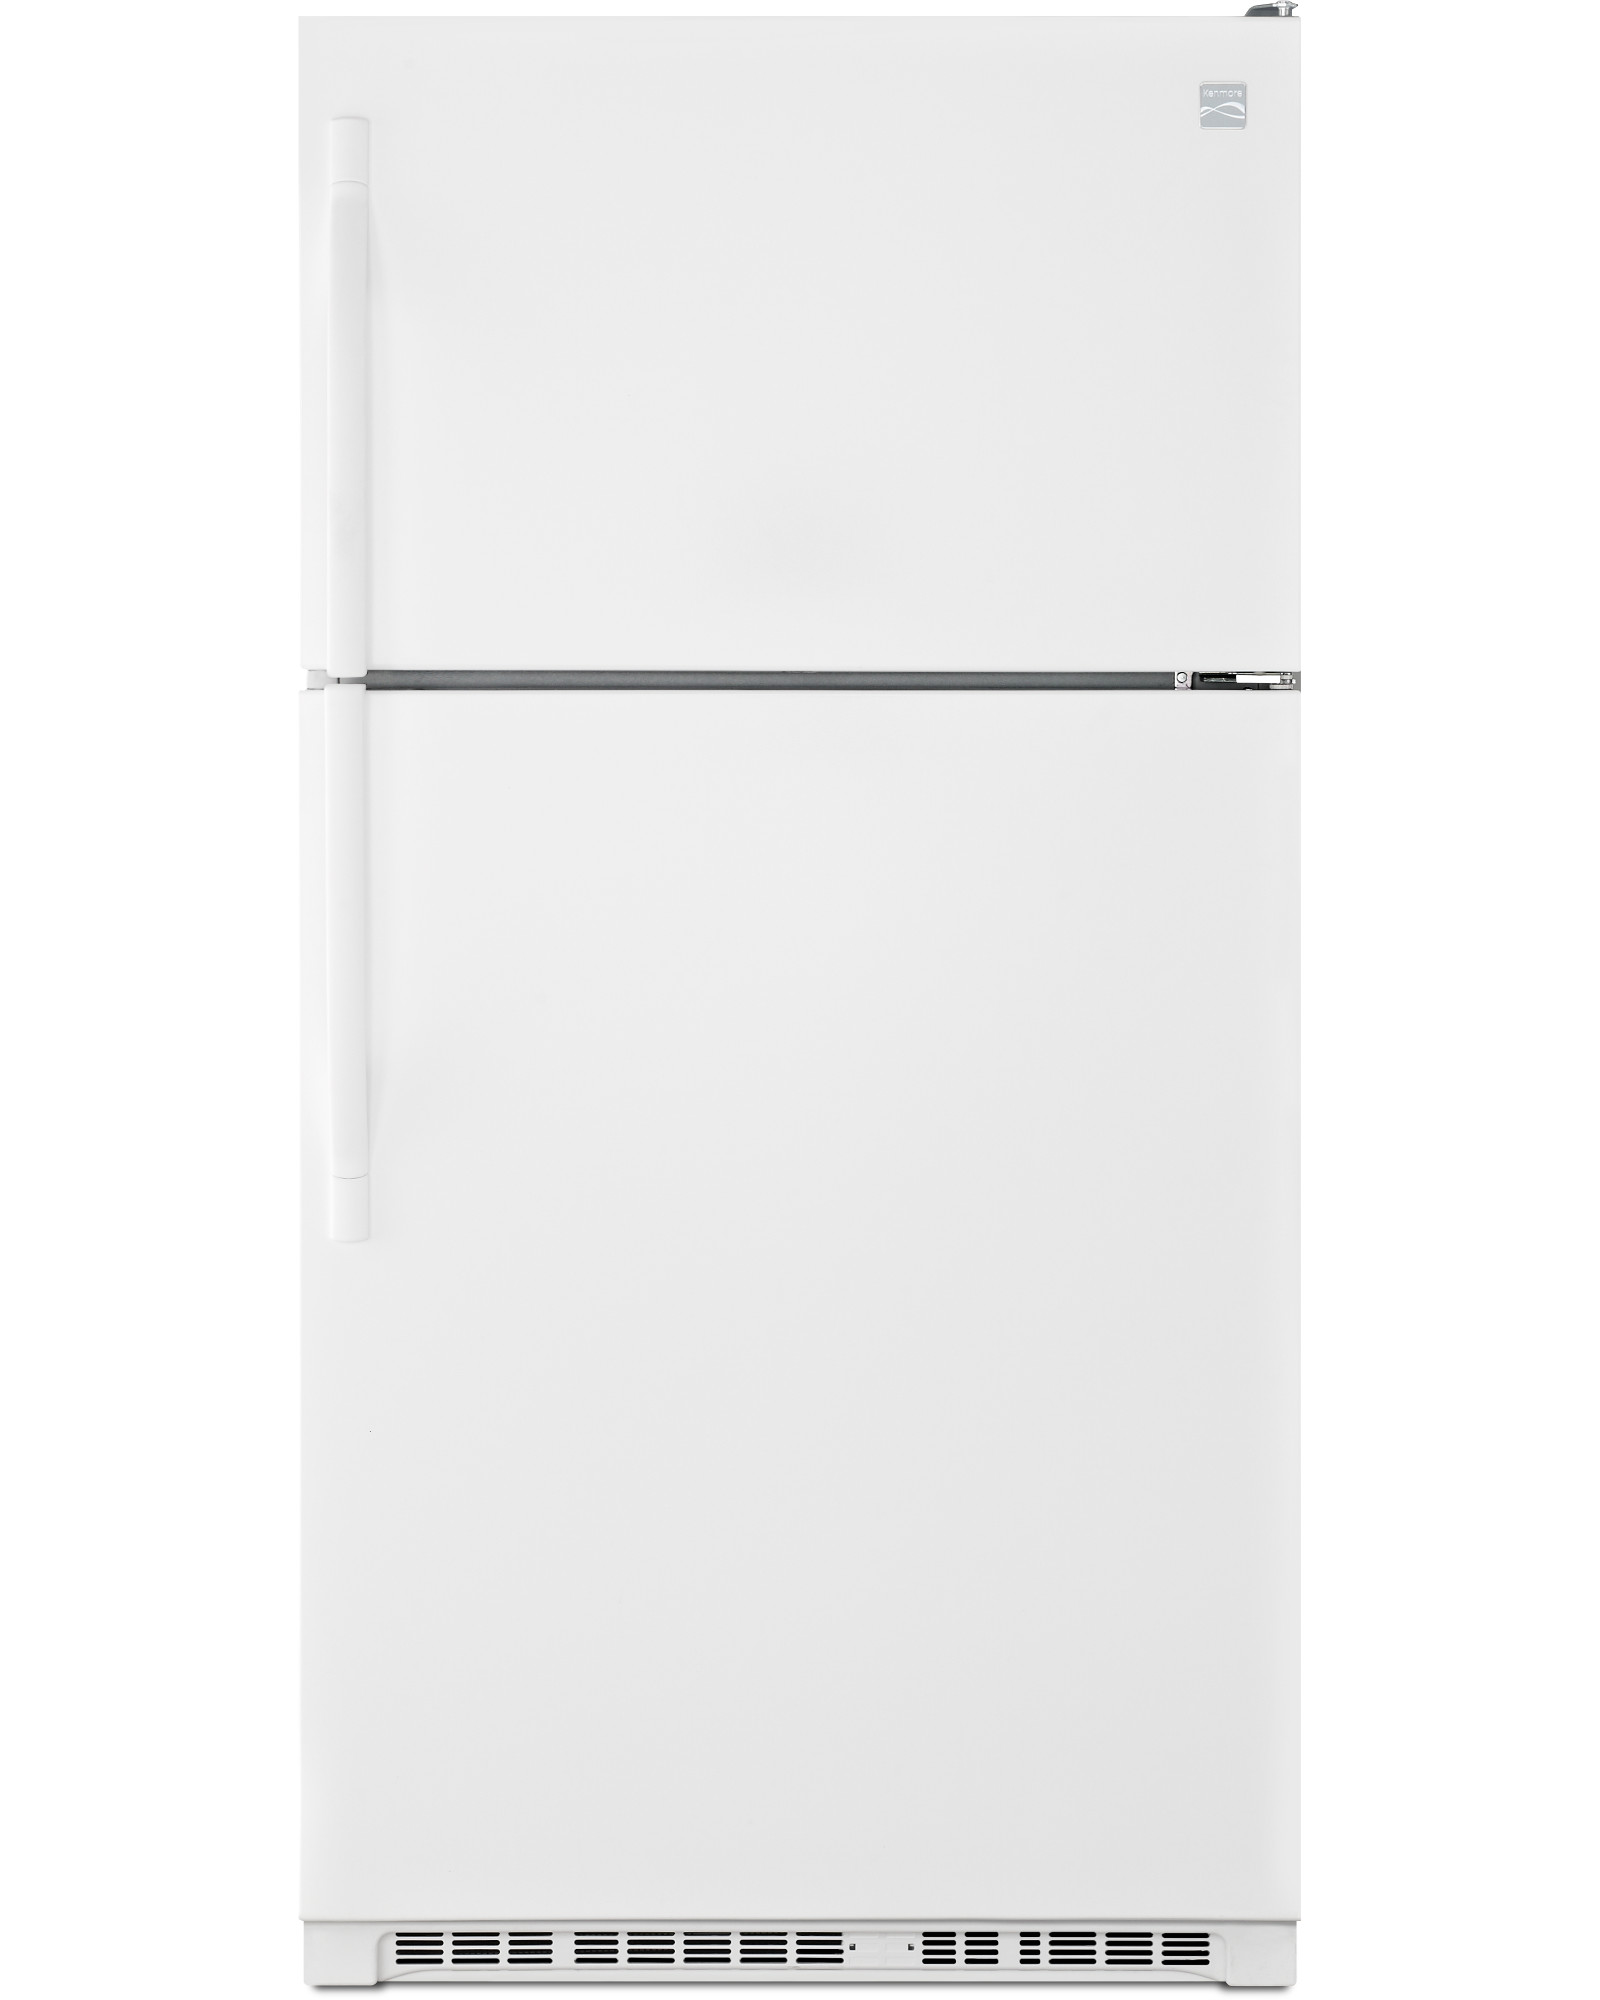 Kenmore 70212 20.5 cu. ft. Top Freezer Refrigerator w/ Ice Maker - White